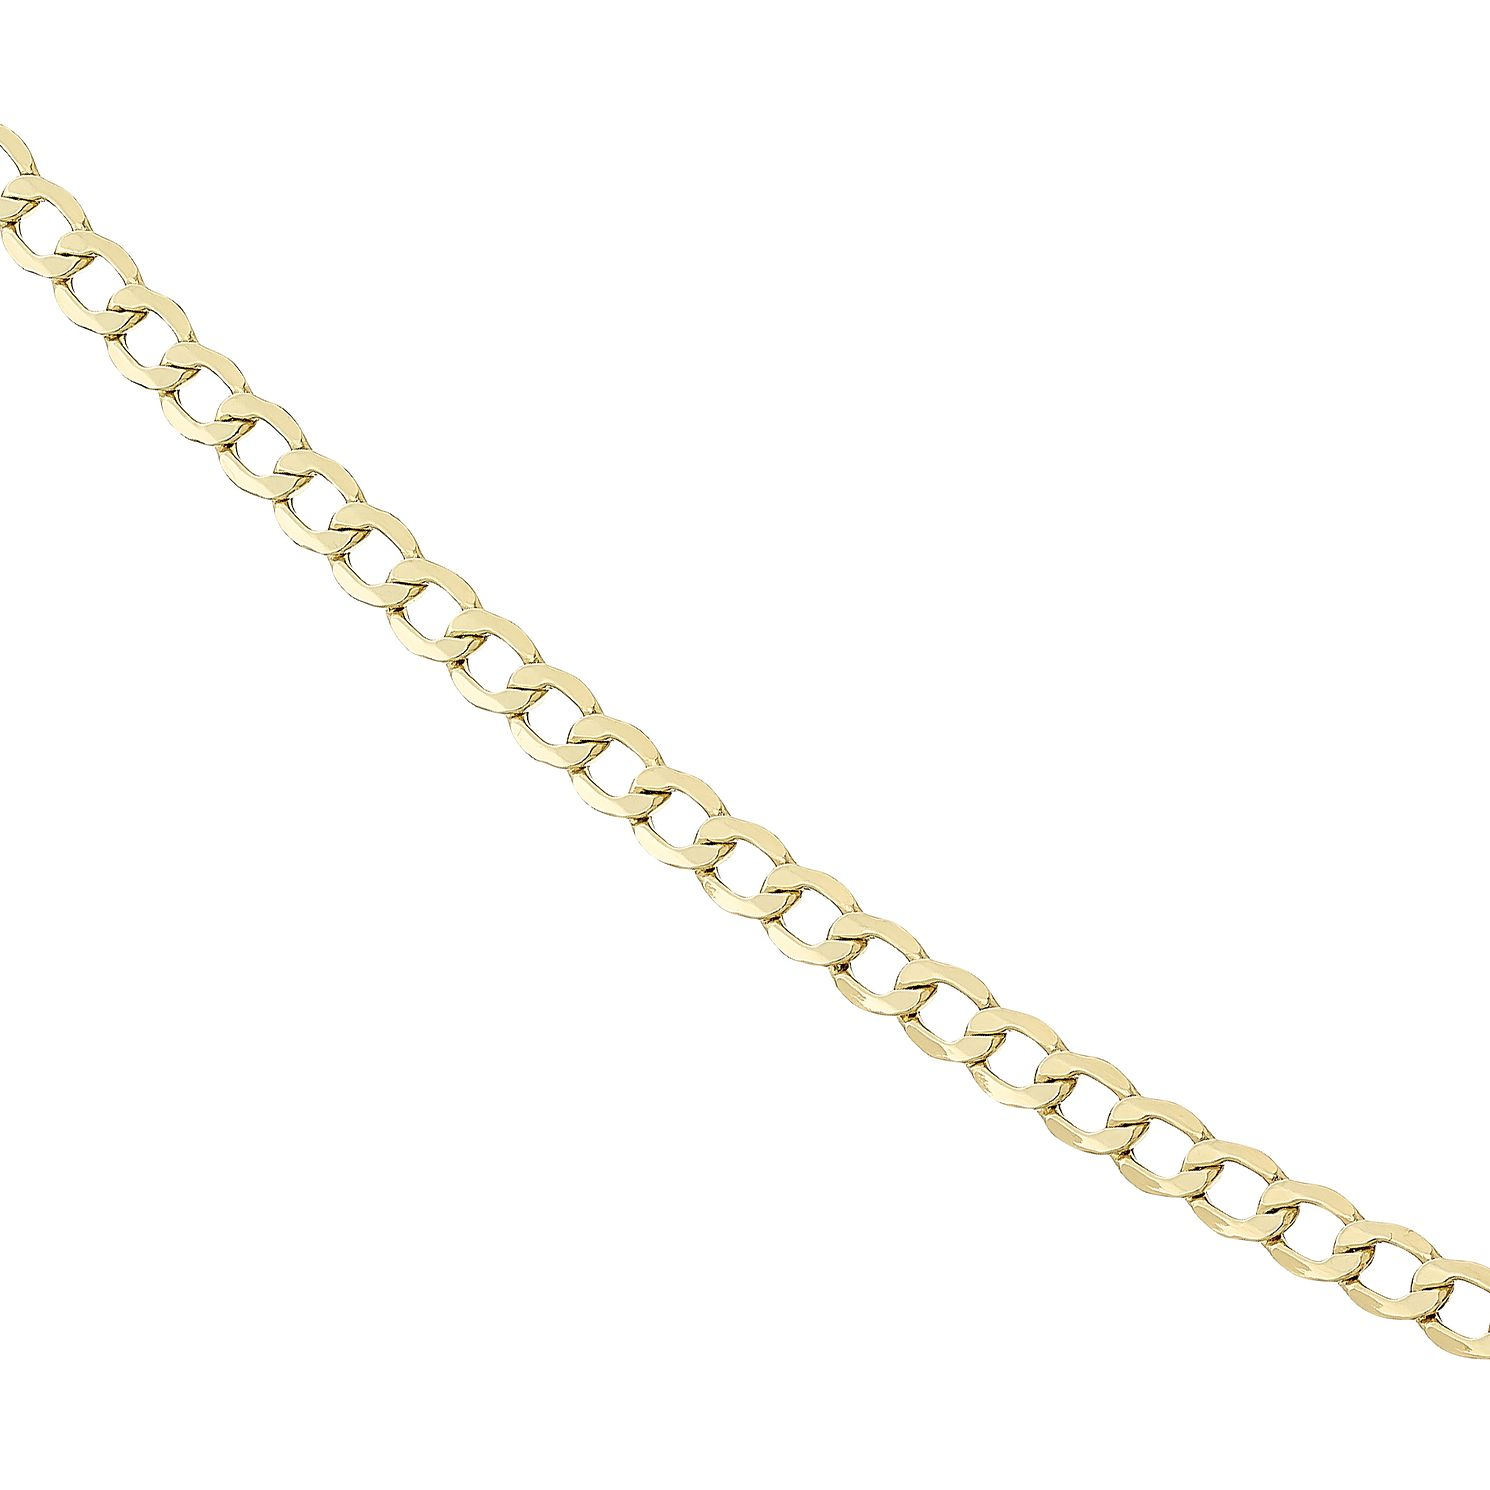 necklace long claire pendant s chain gold